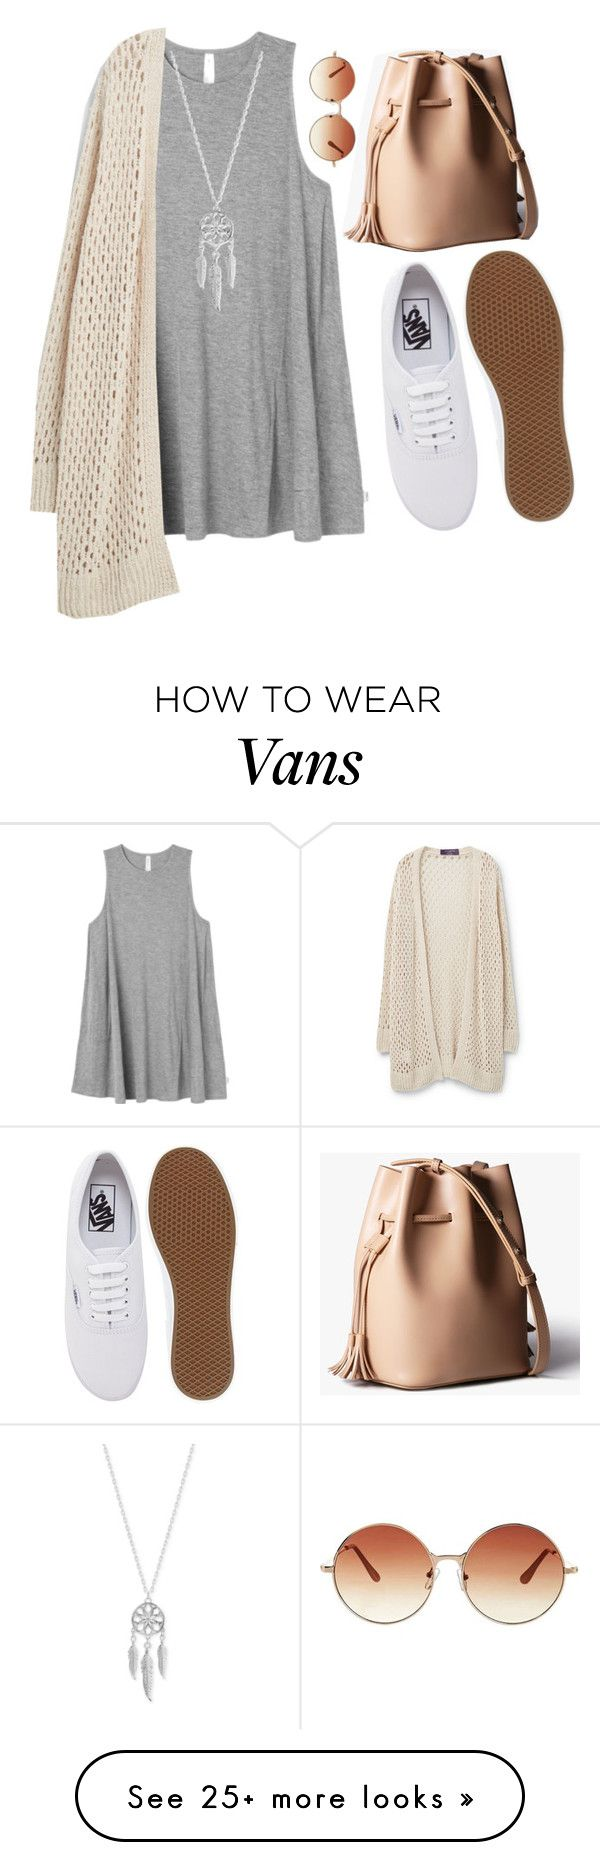 """Dress and vans... Hm...It is look like interesting!"" by slenderman-o on Polyvore featuring RVCA, Violeta by Mango, Vans, Topshop and Lucky Brand"